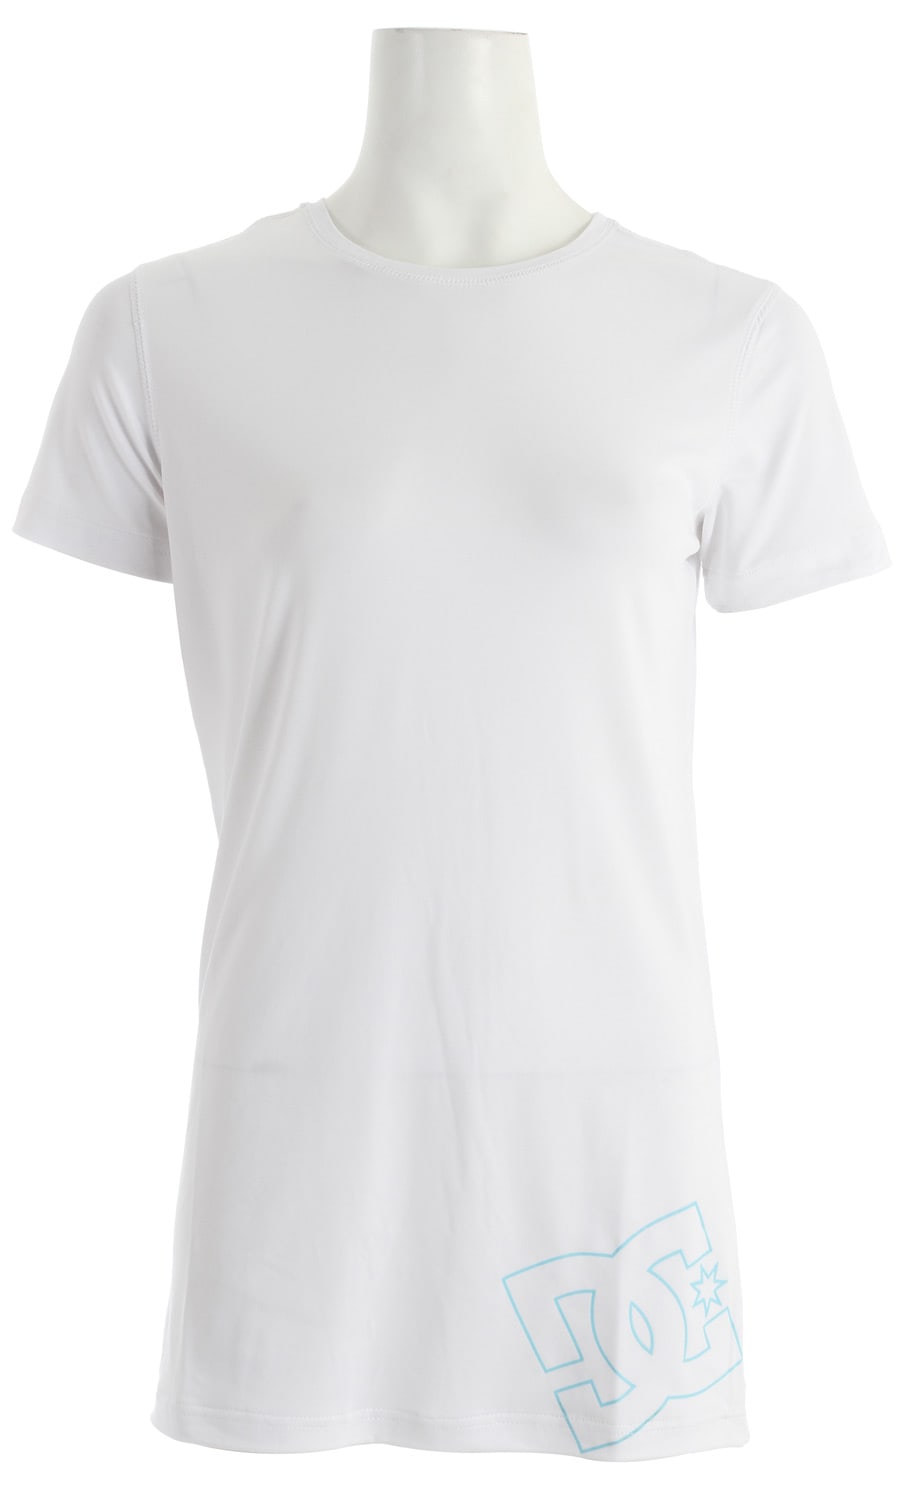 Shop for DC Valdres Baselayer White - Women's